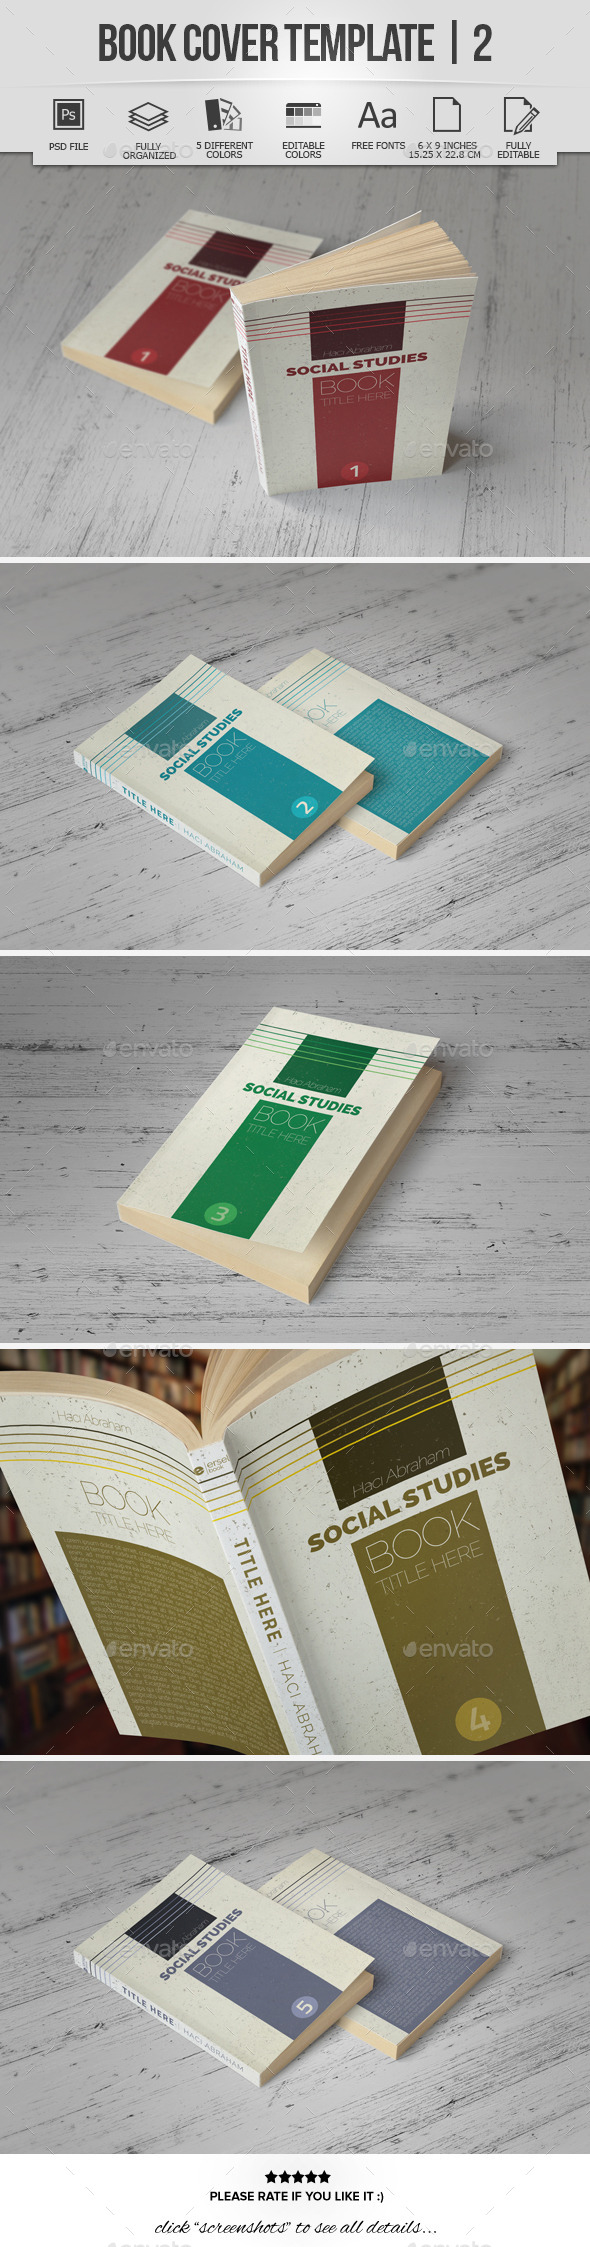 Book Cover Template | 2 - Miscellaneous Print Templates